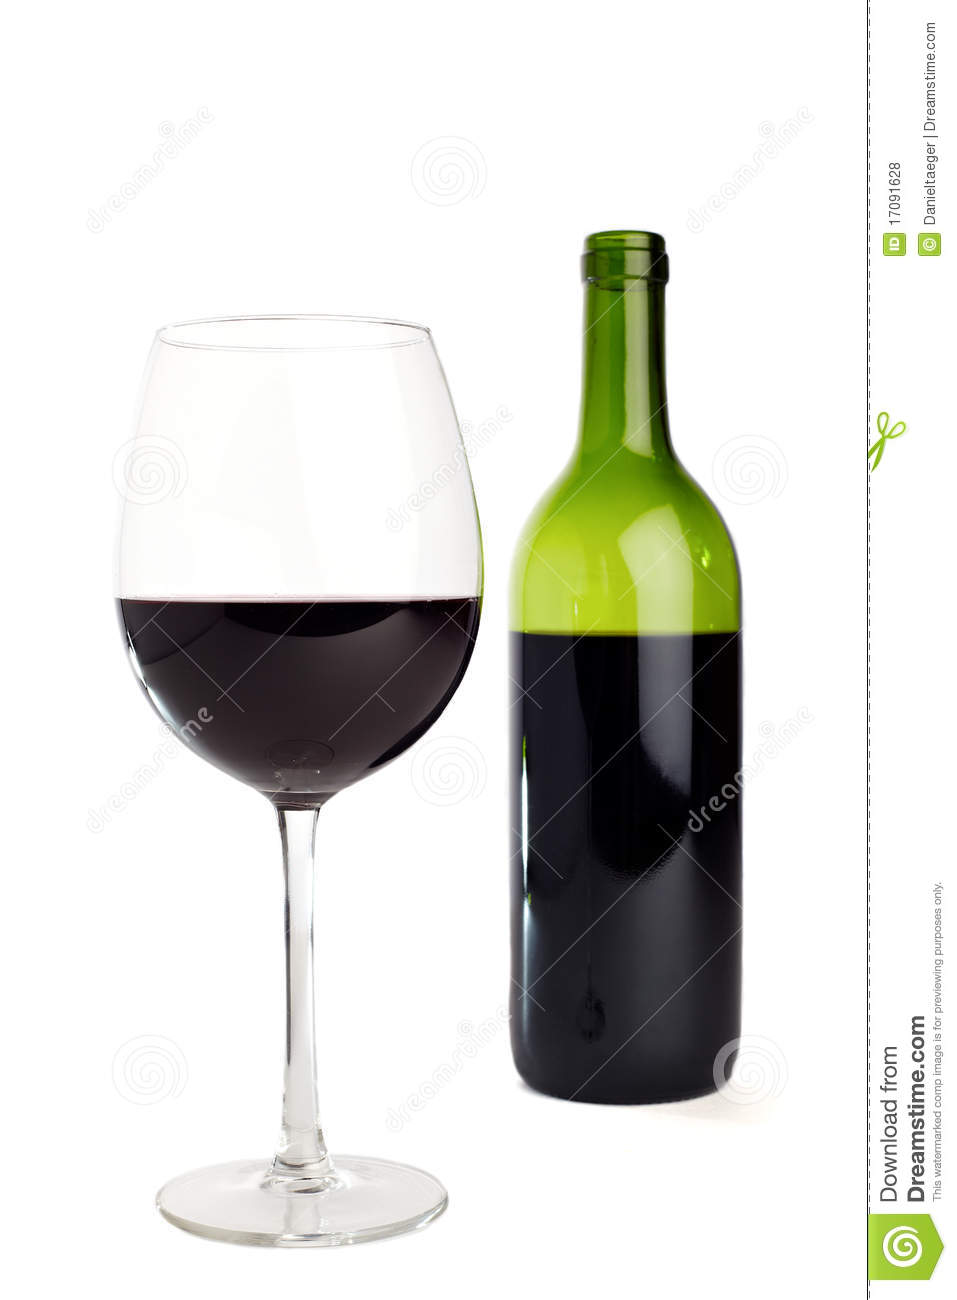 Red wine bottle and glass royalty free stock photos for Wine bottle glass